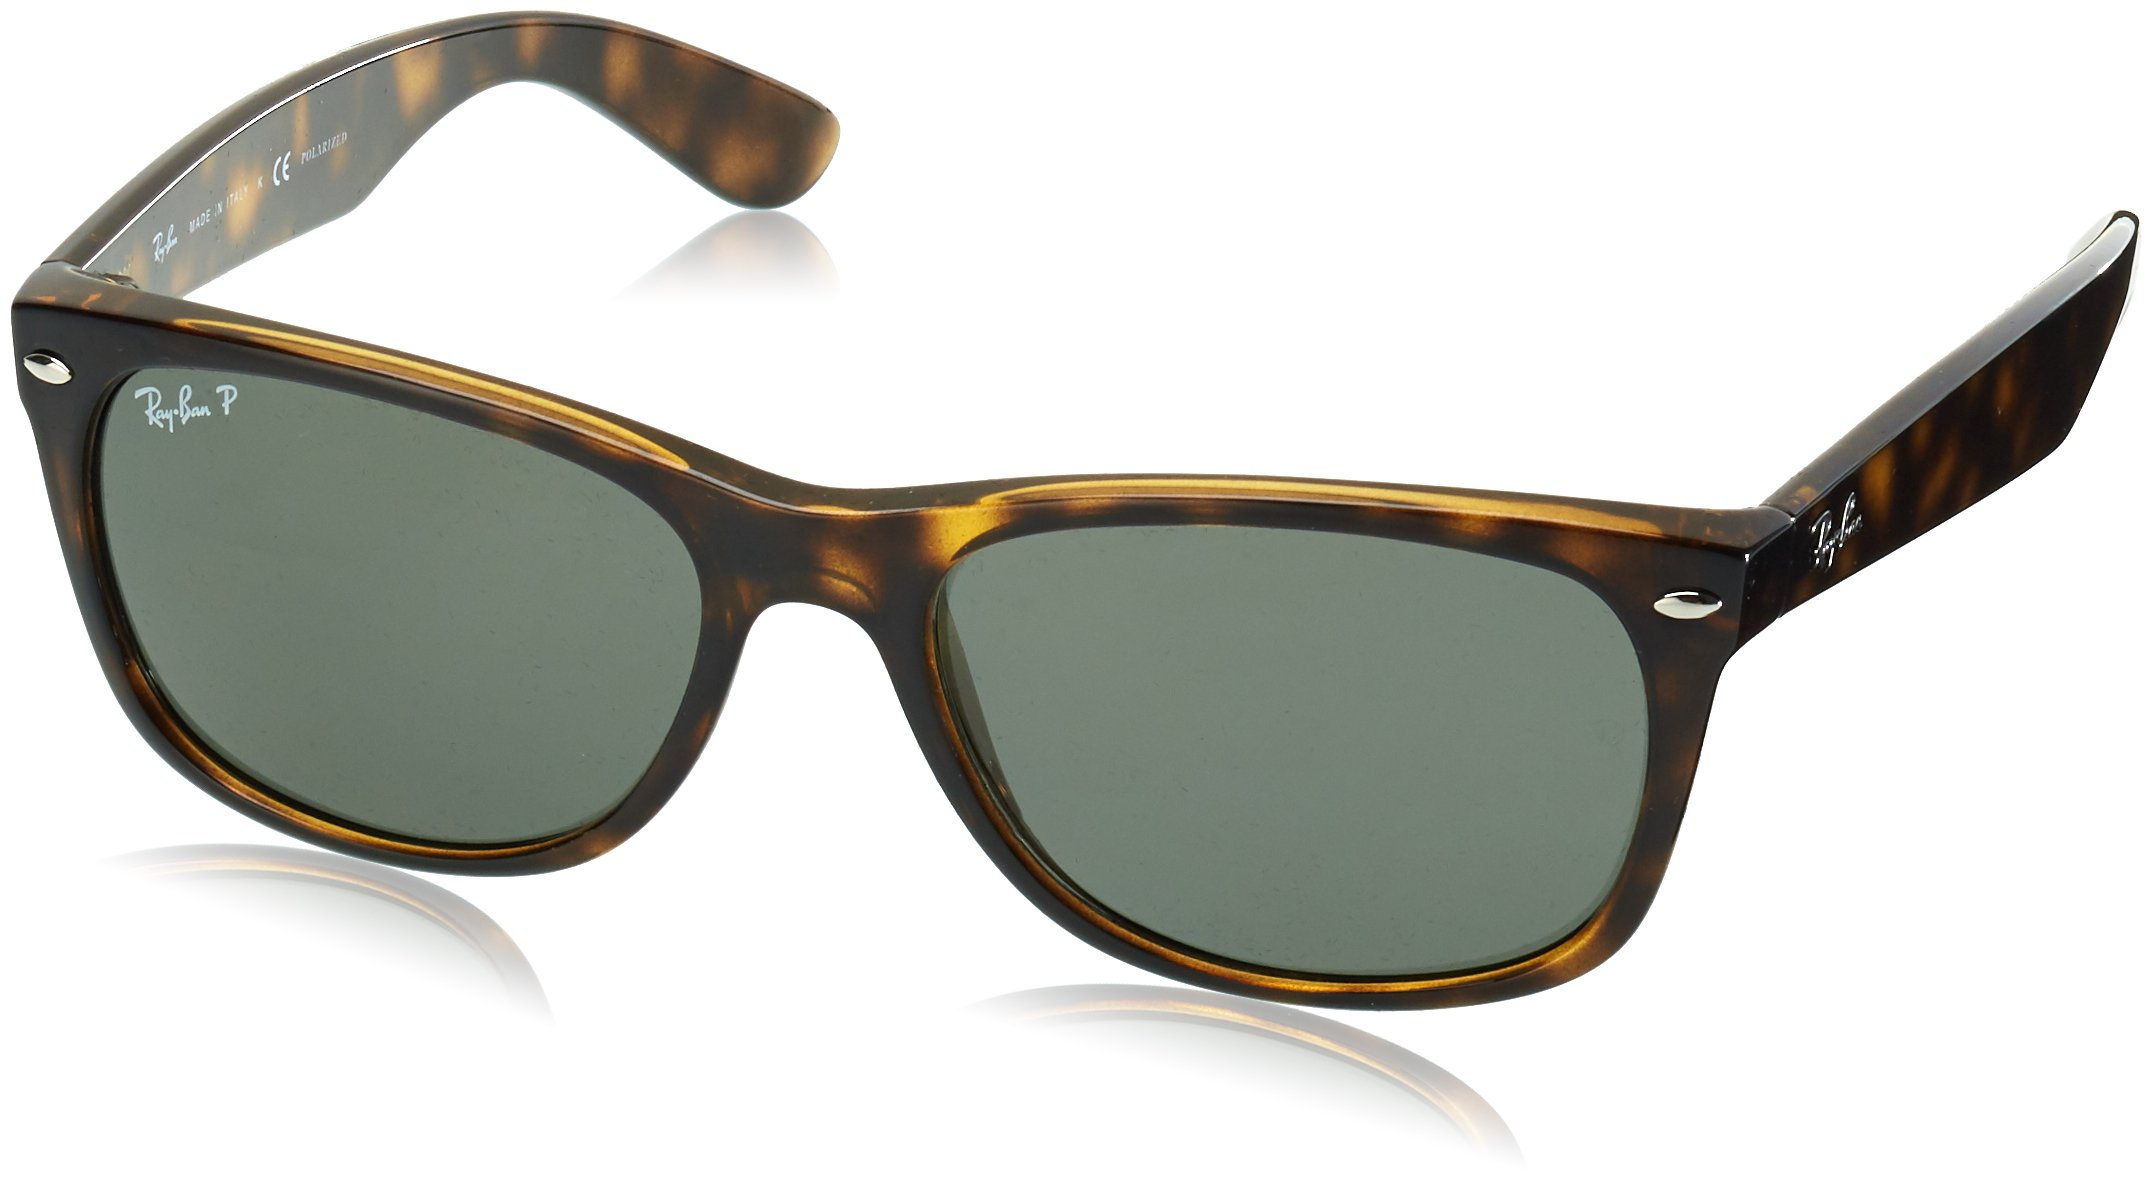 RAY-BAN RB2132 New Wayfarer Polarized Sunglasses, Tortoise/Polarized Green, 58 mm by RAY-BAN